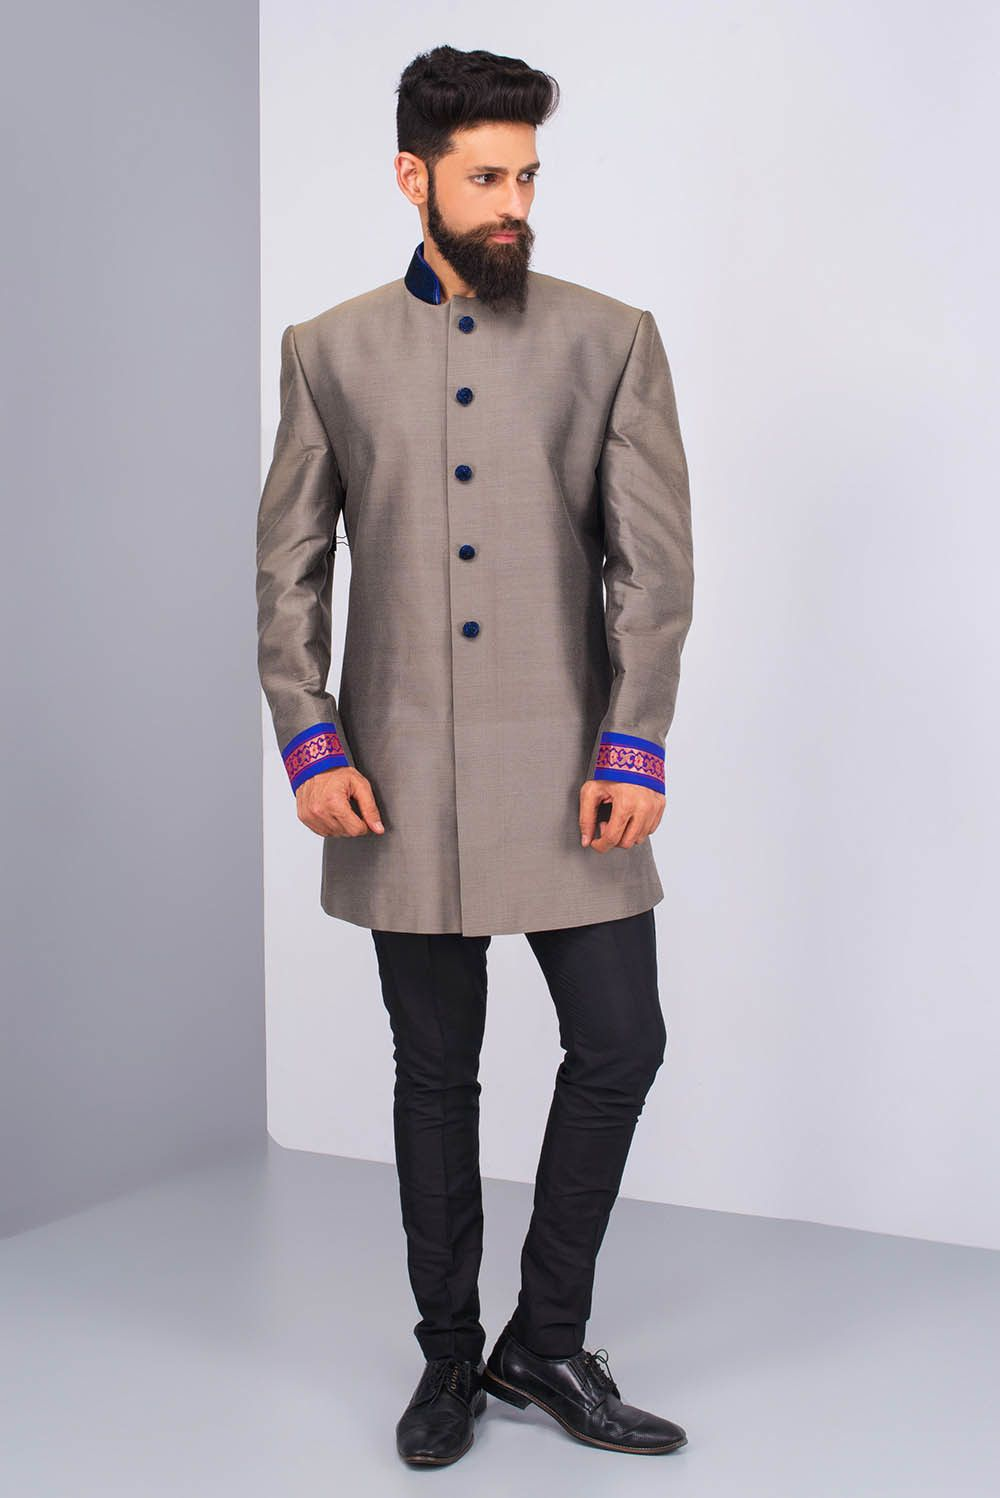 51aa33ca22a0f8 PRIYA CHHABRIA Grey Sherwani With Velvet Collar And Black Pants. #flyrobe  #groom #groomwear #groomsherwani #sherwani #flyrobe #wedding  #designersherwani